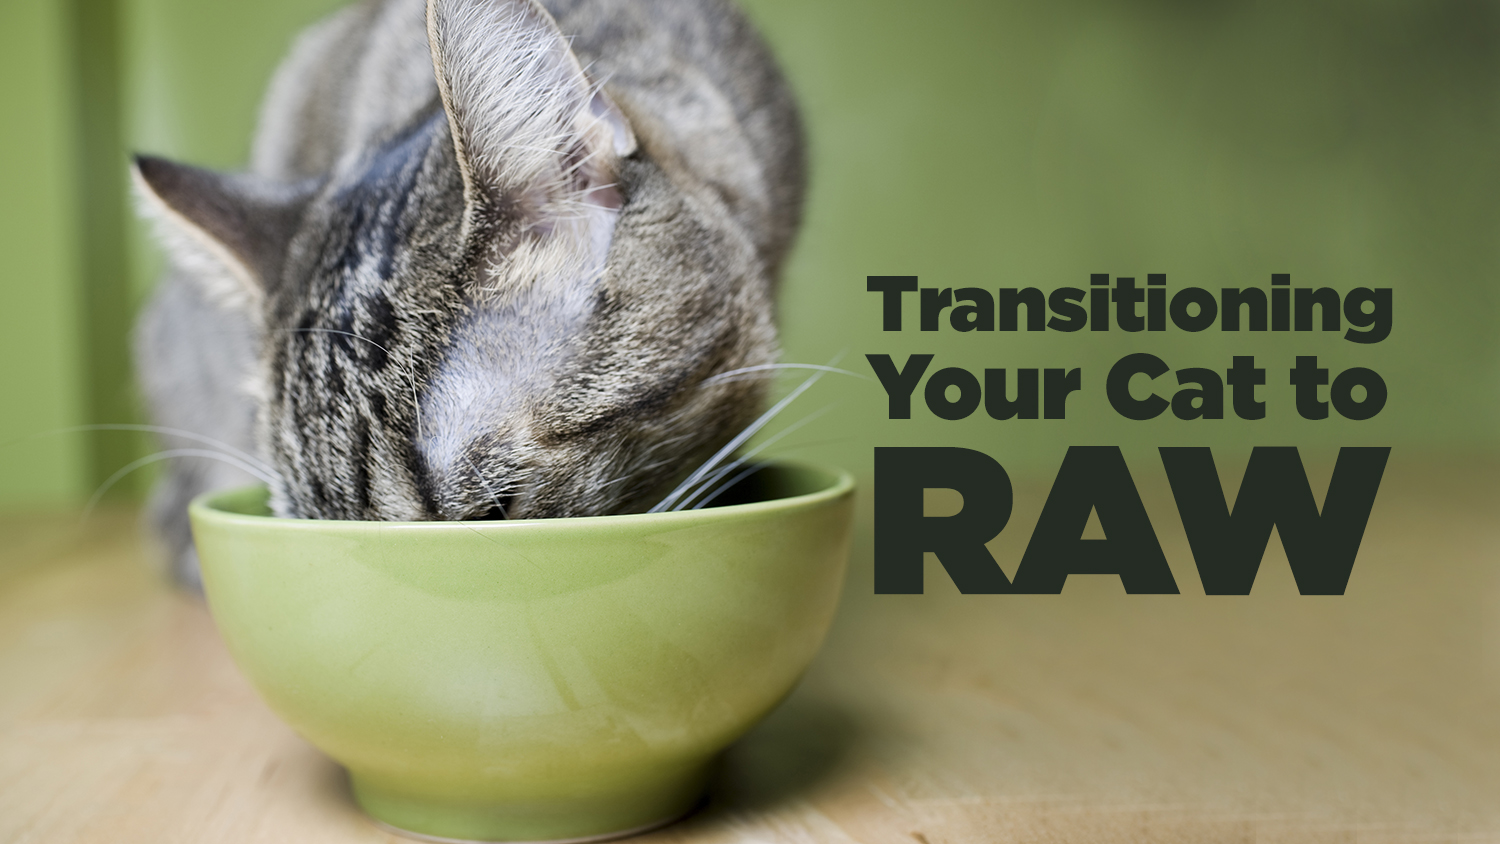 Transitioning Your Cat to Raw